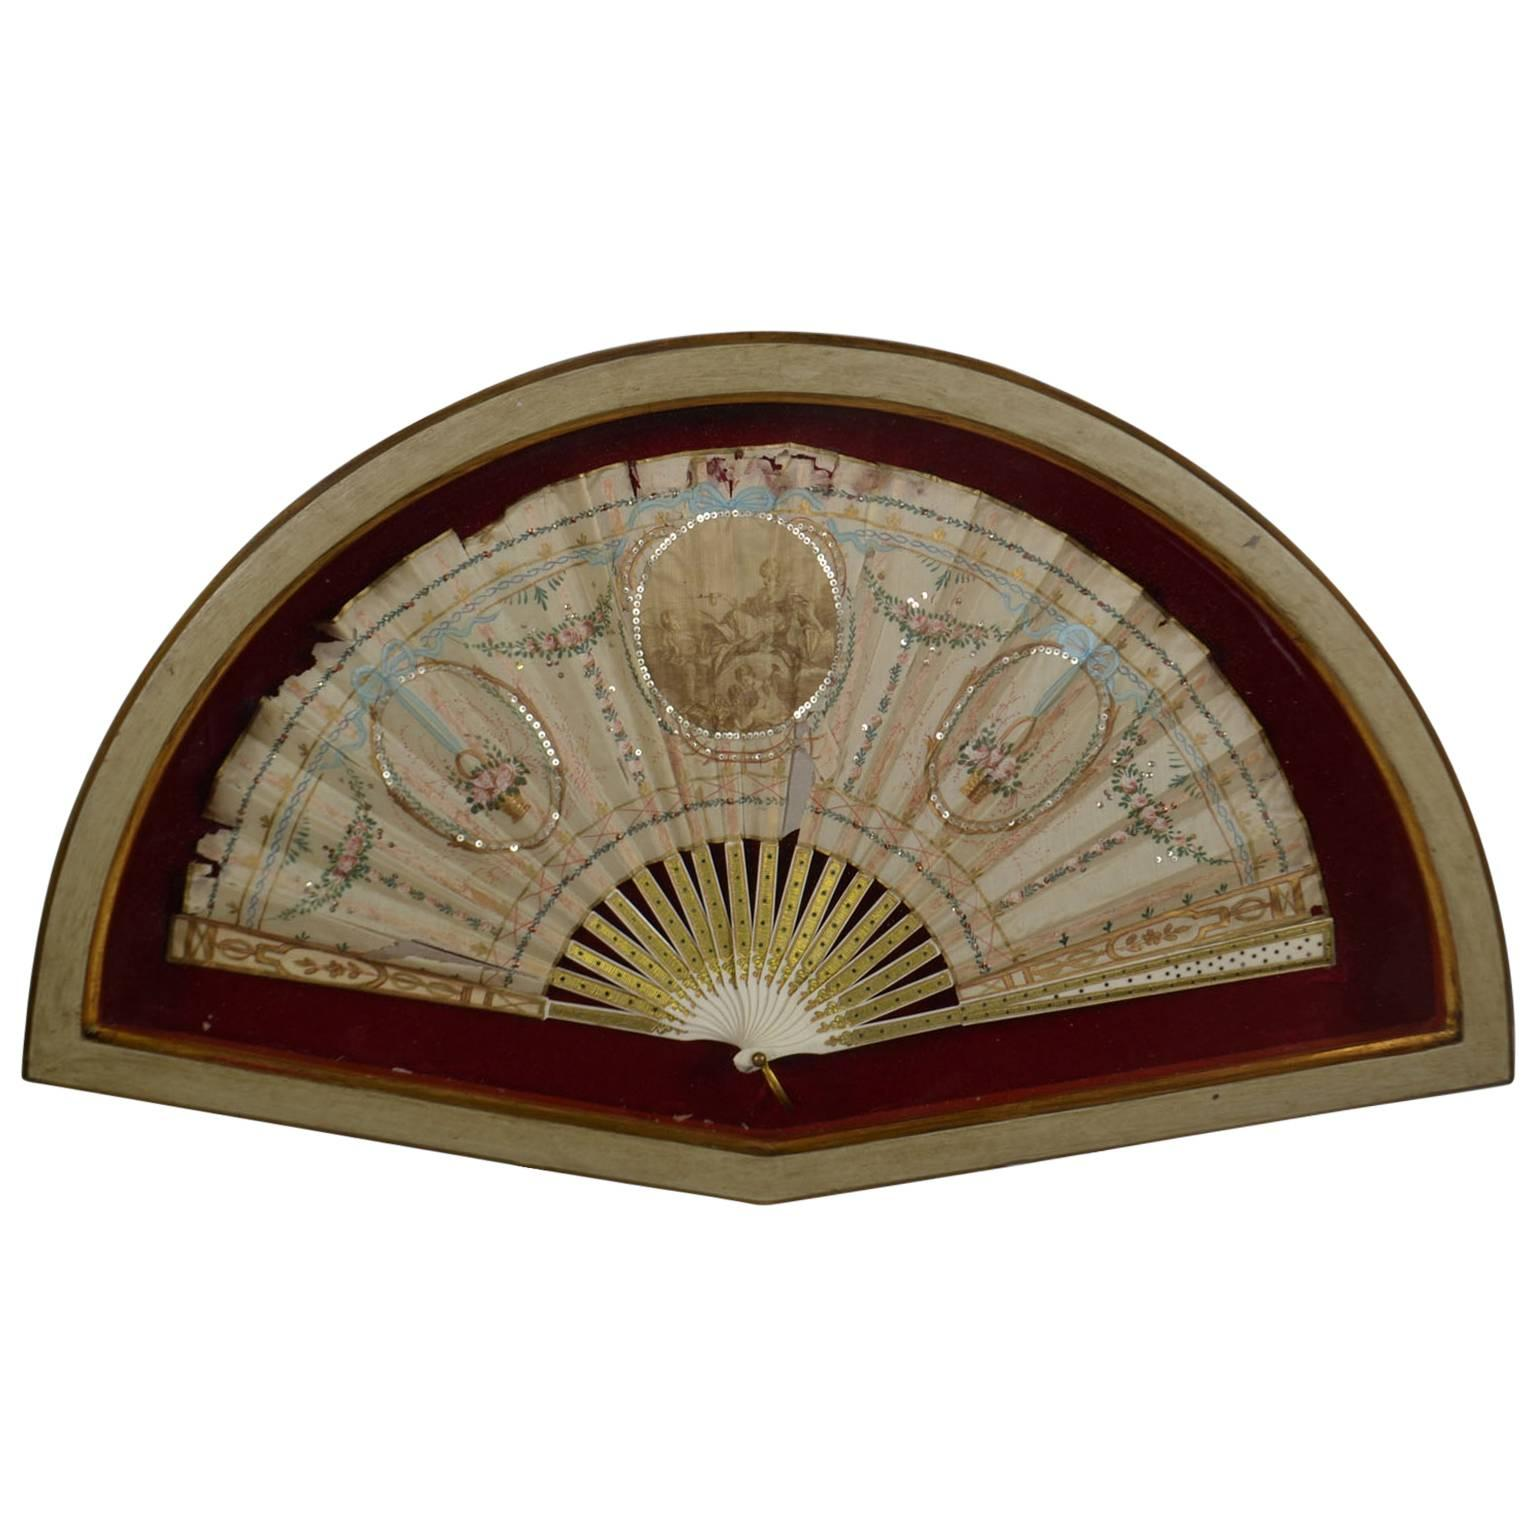 Framed 18th Century Hand-Painted Fan